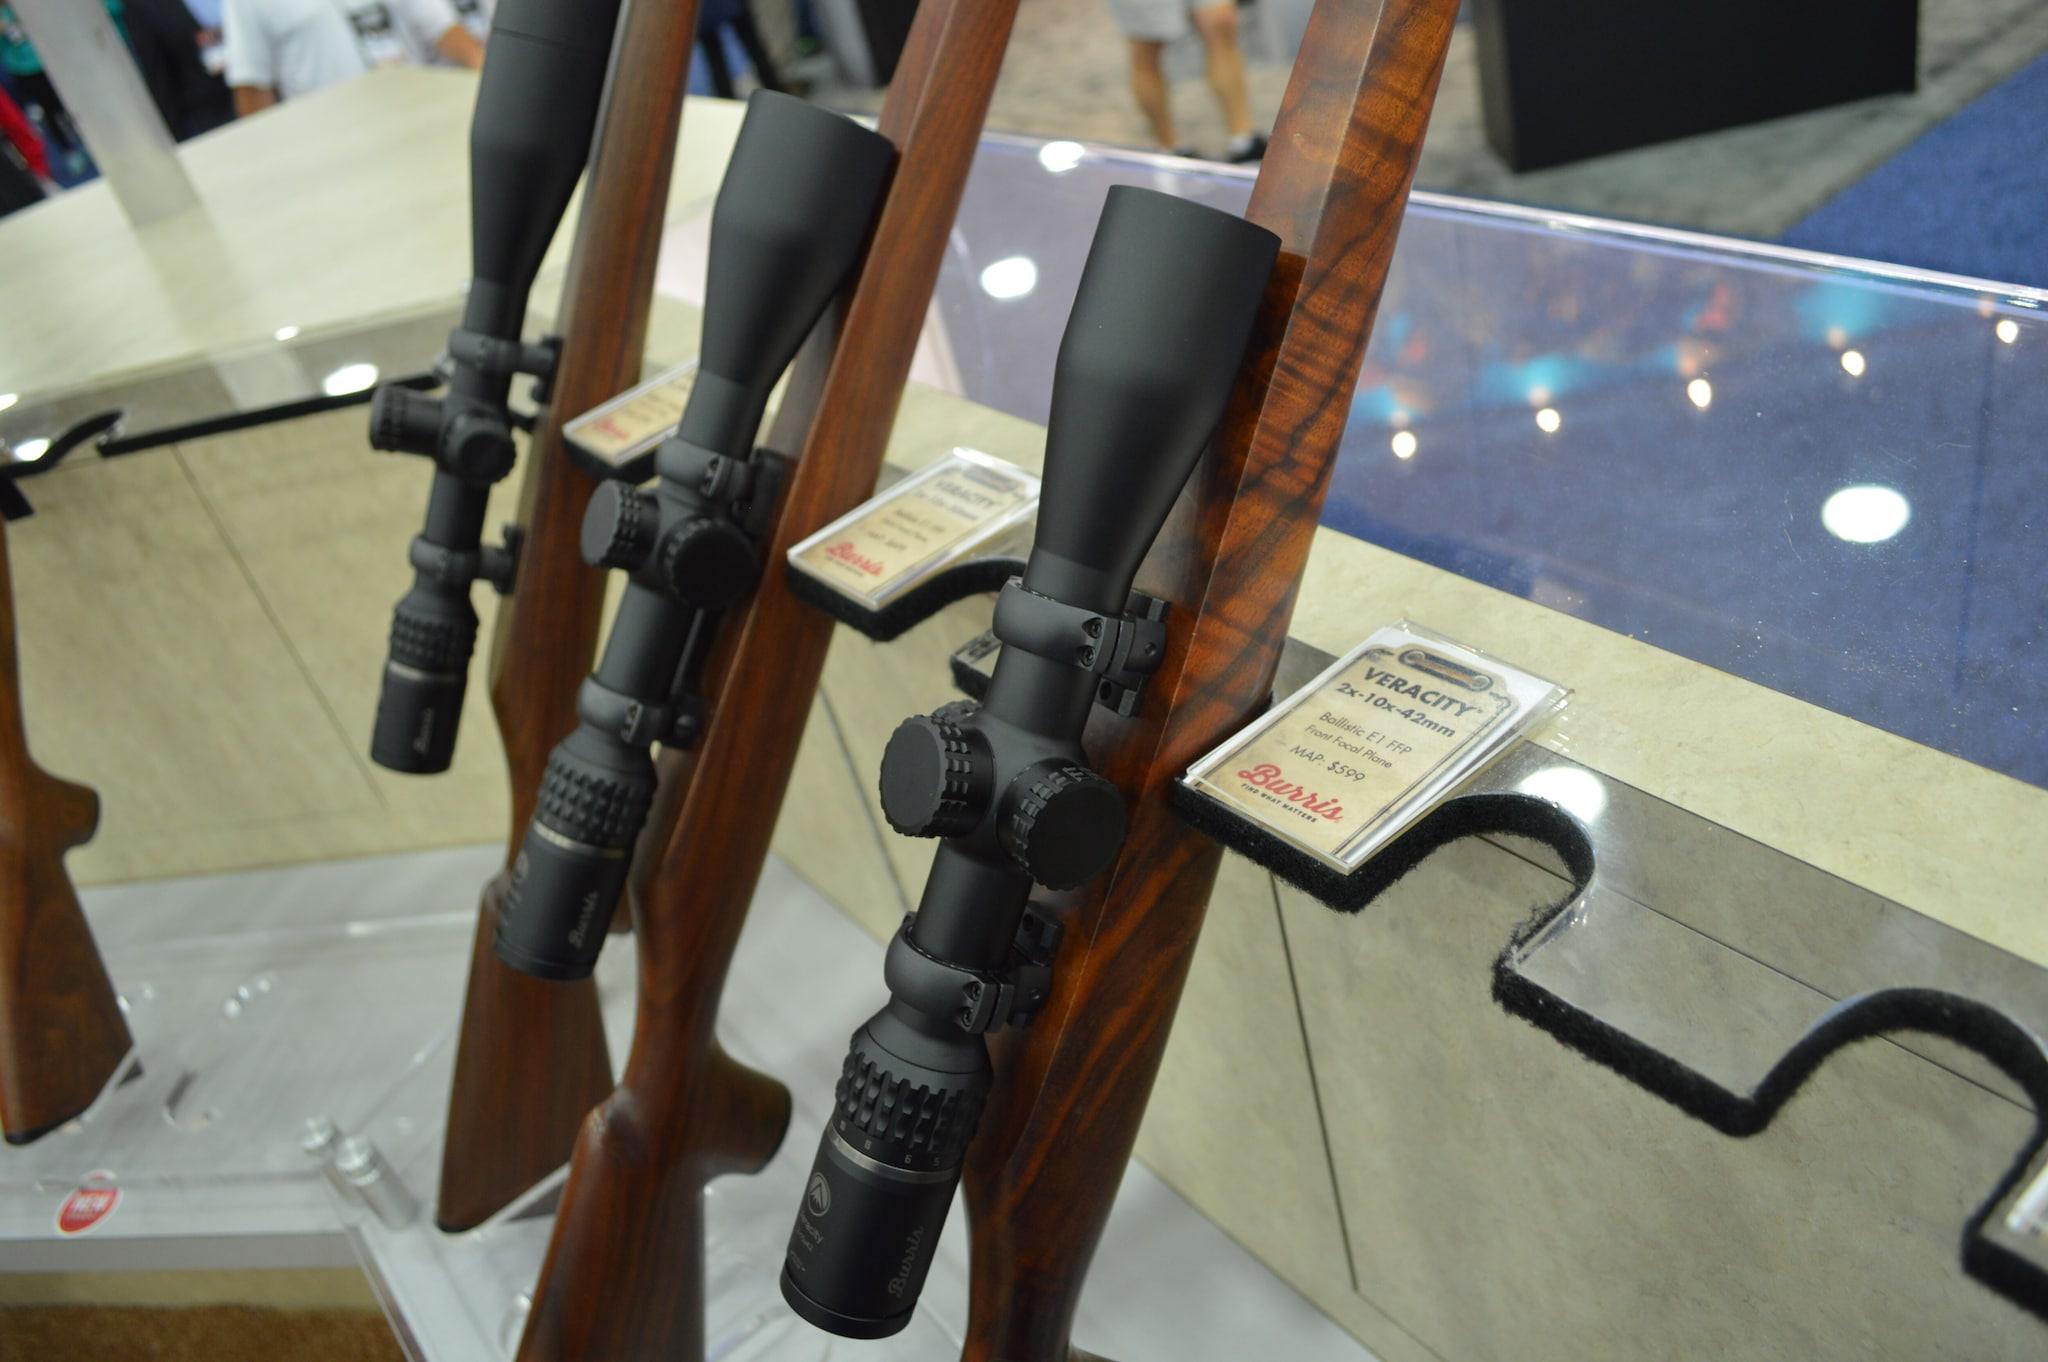 Burris Optics showed off a full family of Veracity 30mm front-focal-plane riflescopes